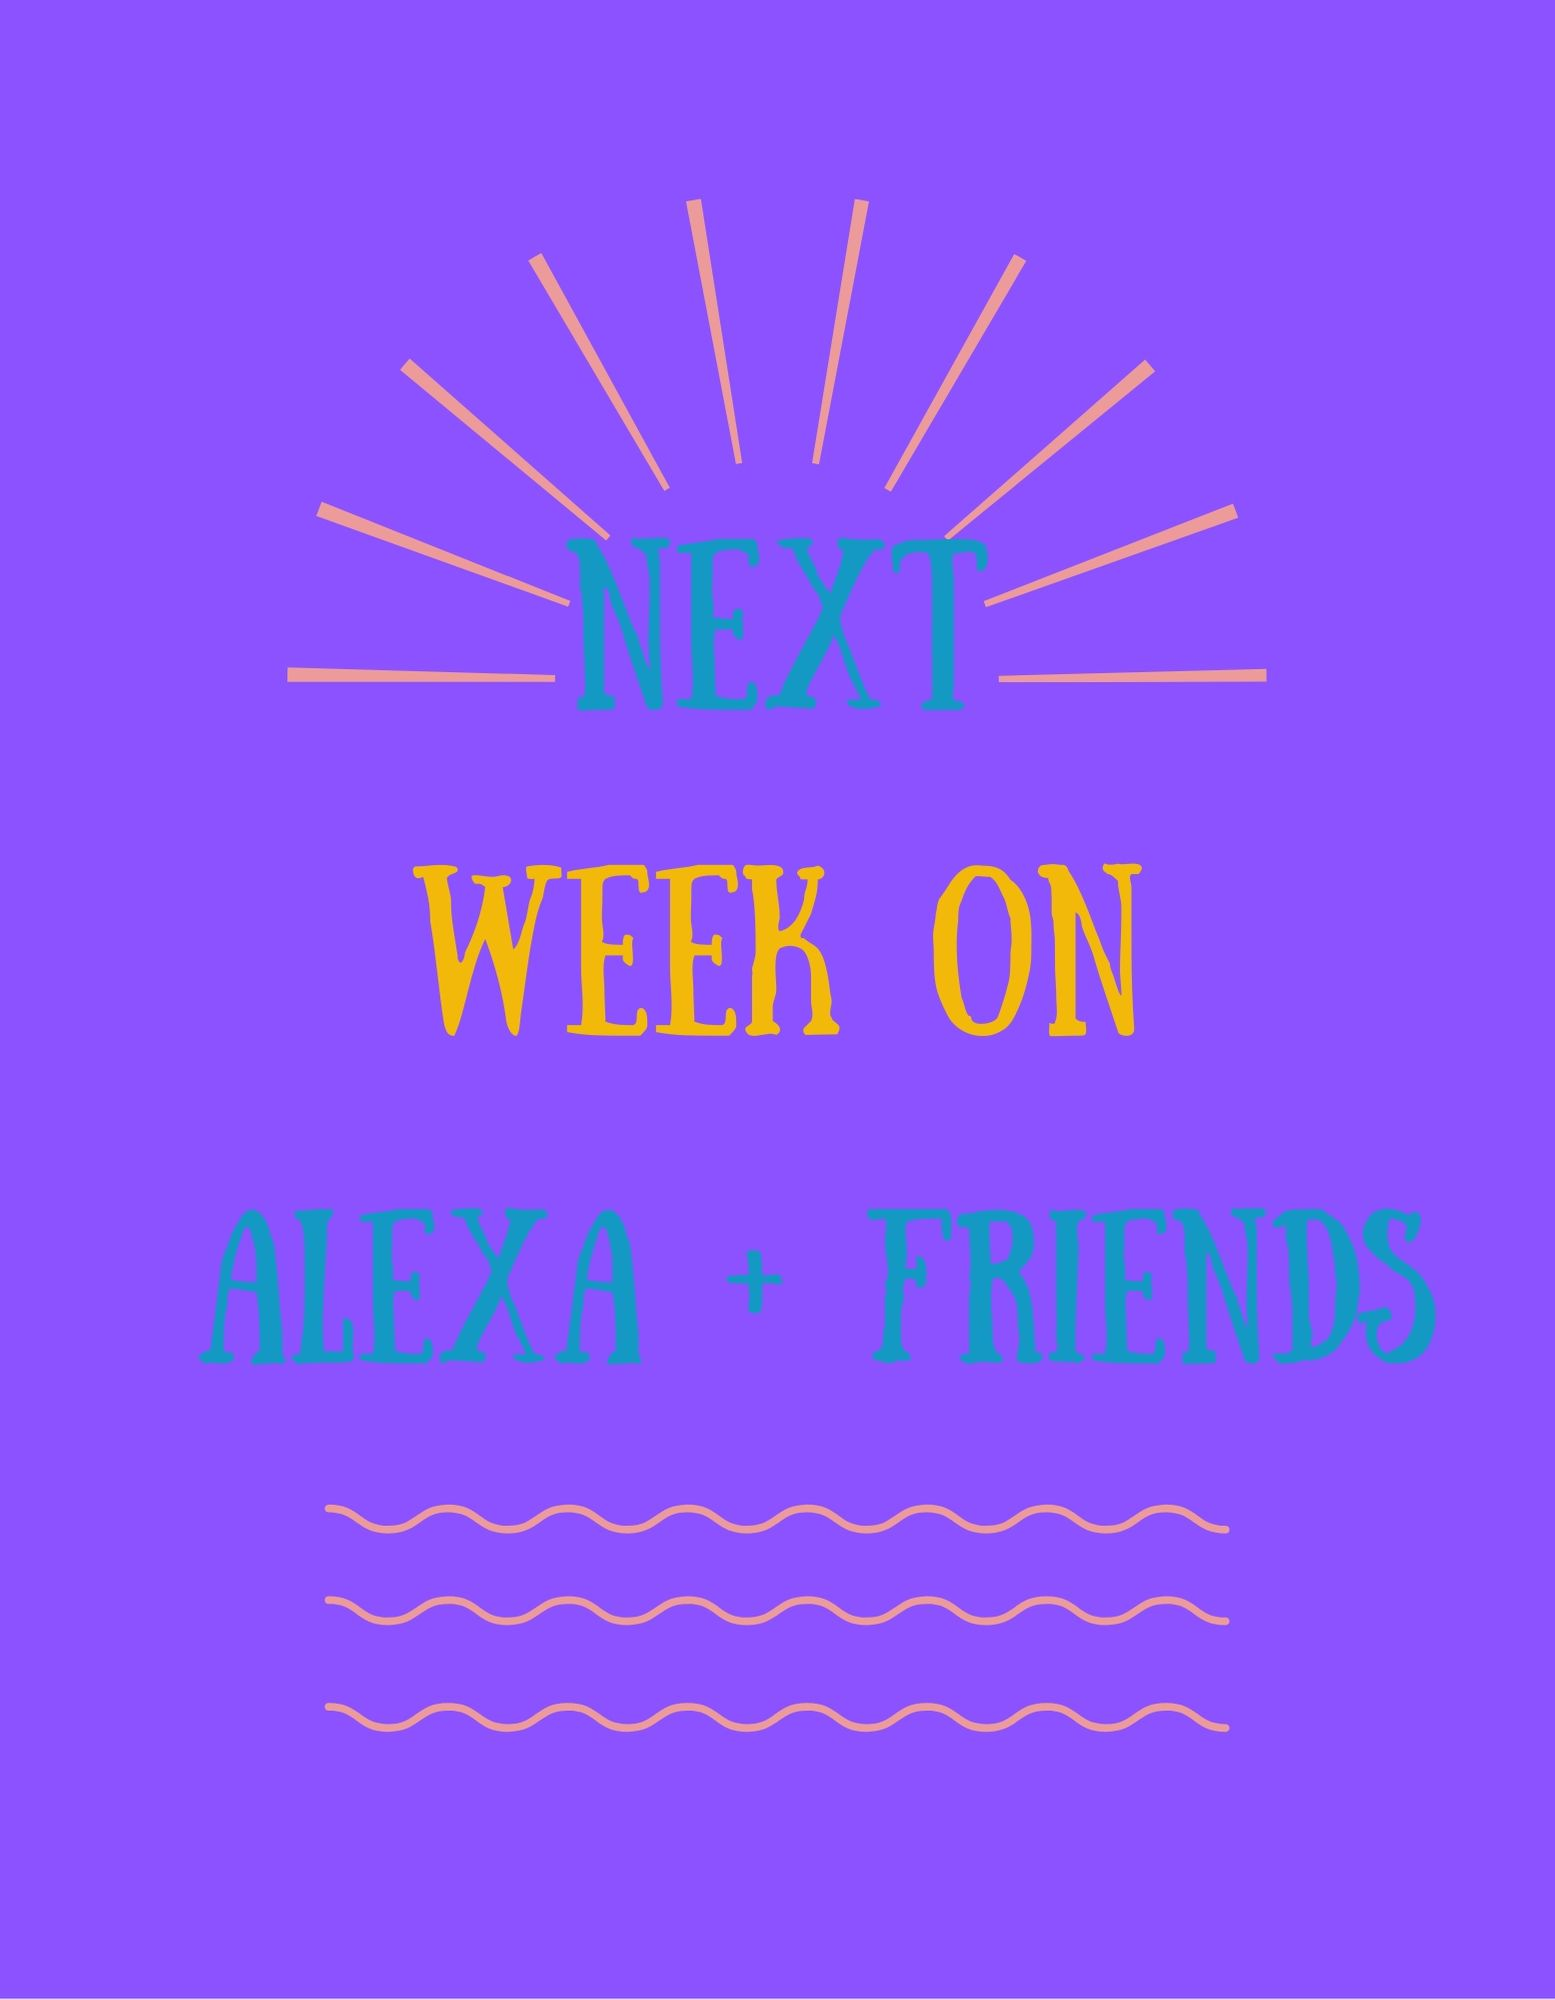 Next Week on Alexa and Friends/ April 6th